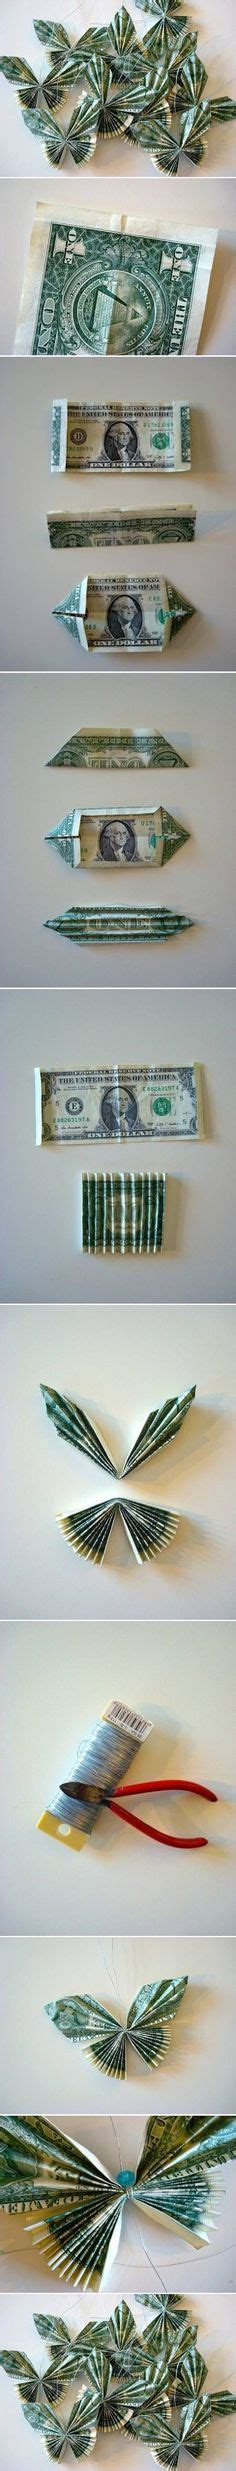 Make Paper Feel Like Money - butterfly money i wish i knew how to make this for